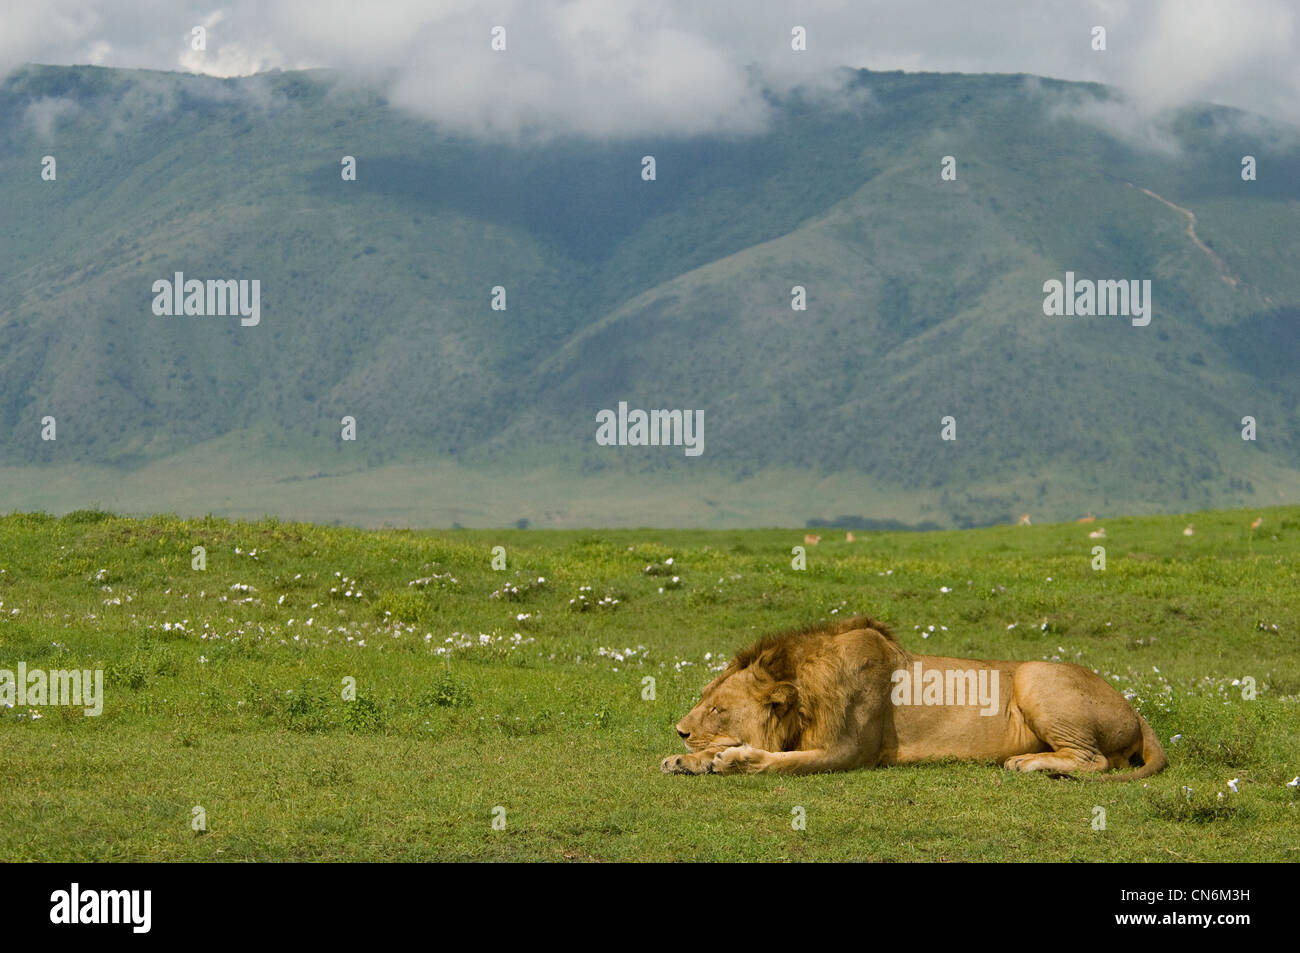 Lion resting in plains - Stock Image